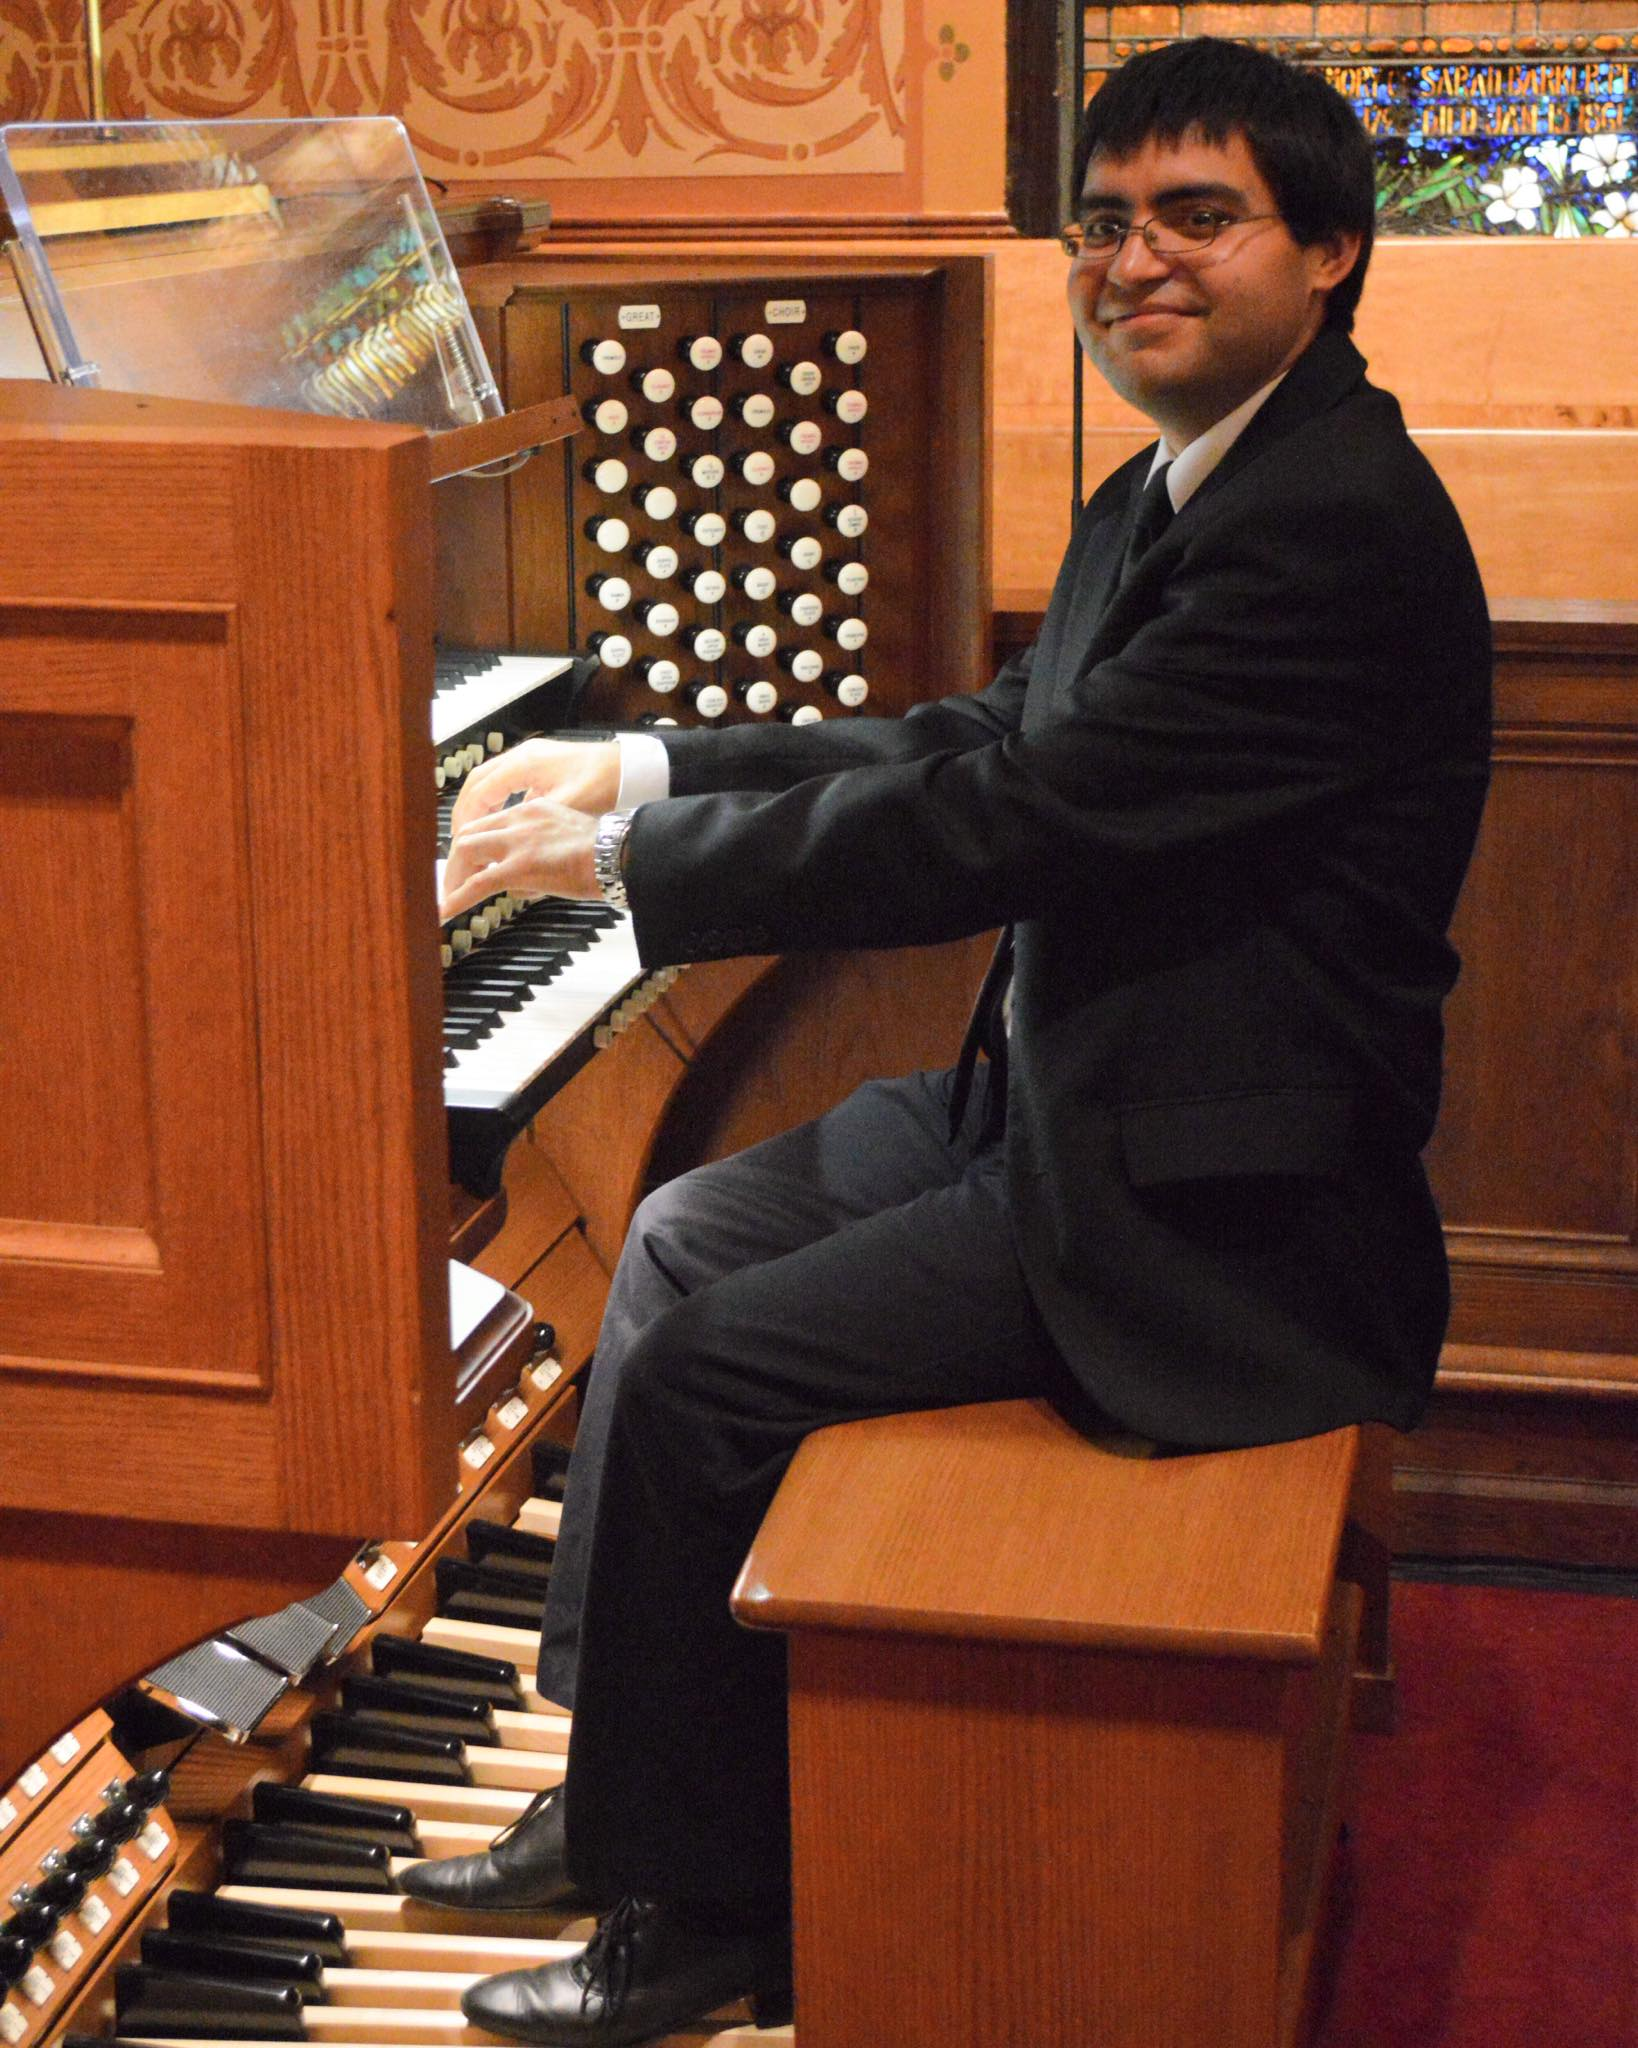 Photo of Director of Music Ministry, Ruben Rincon, Jr. seated at the organ.